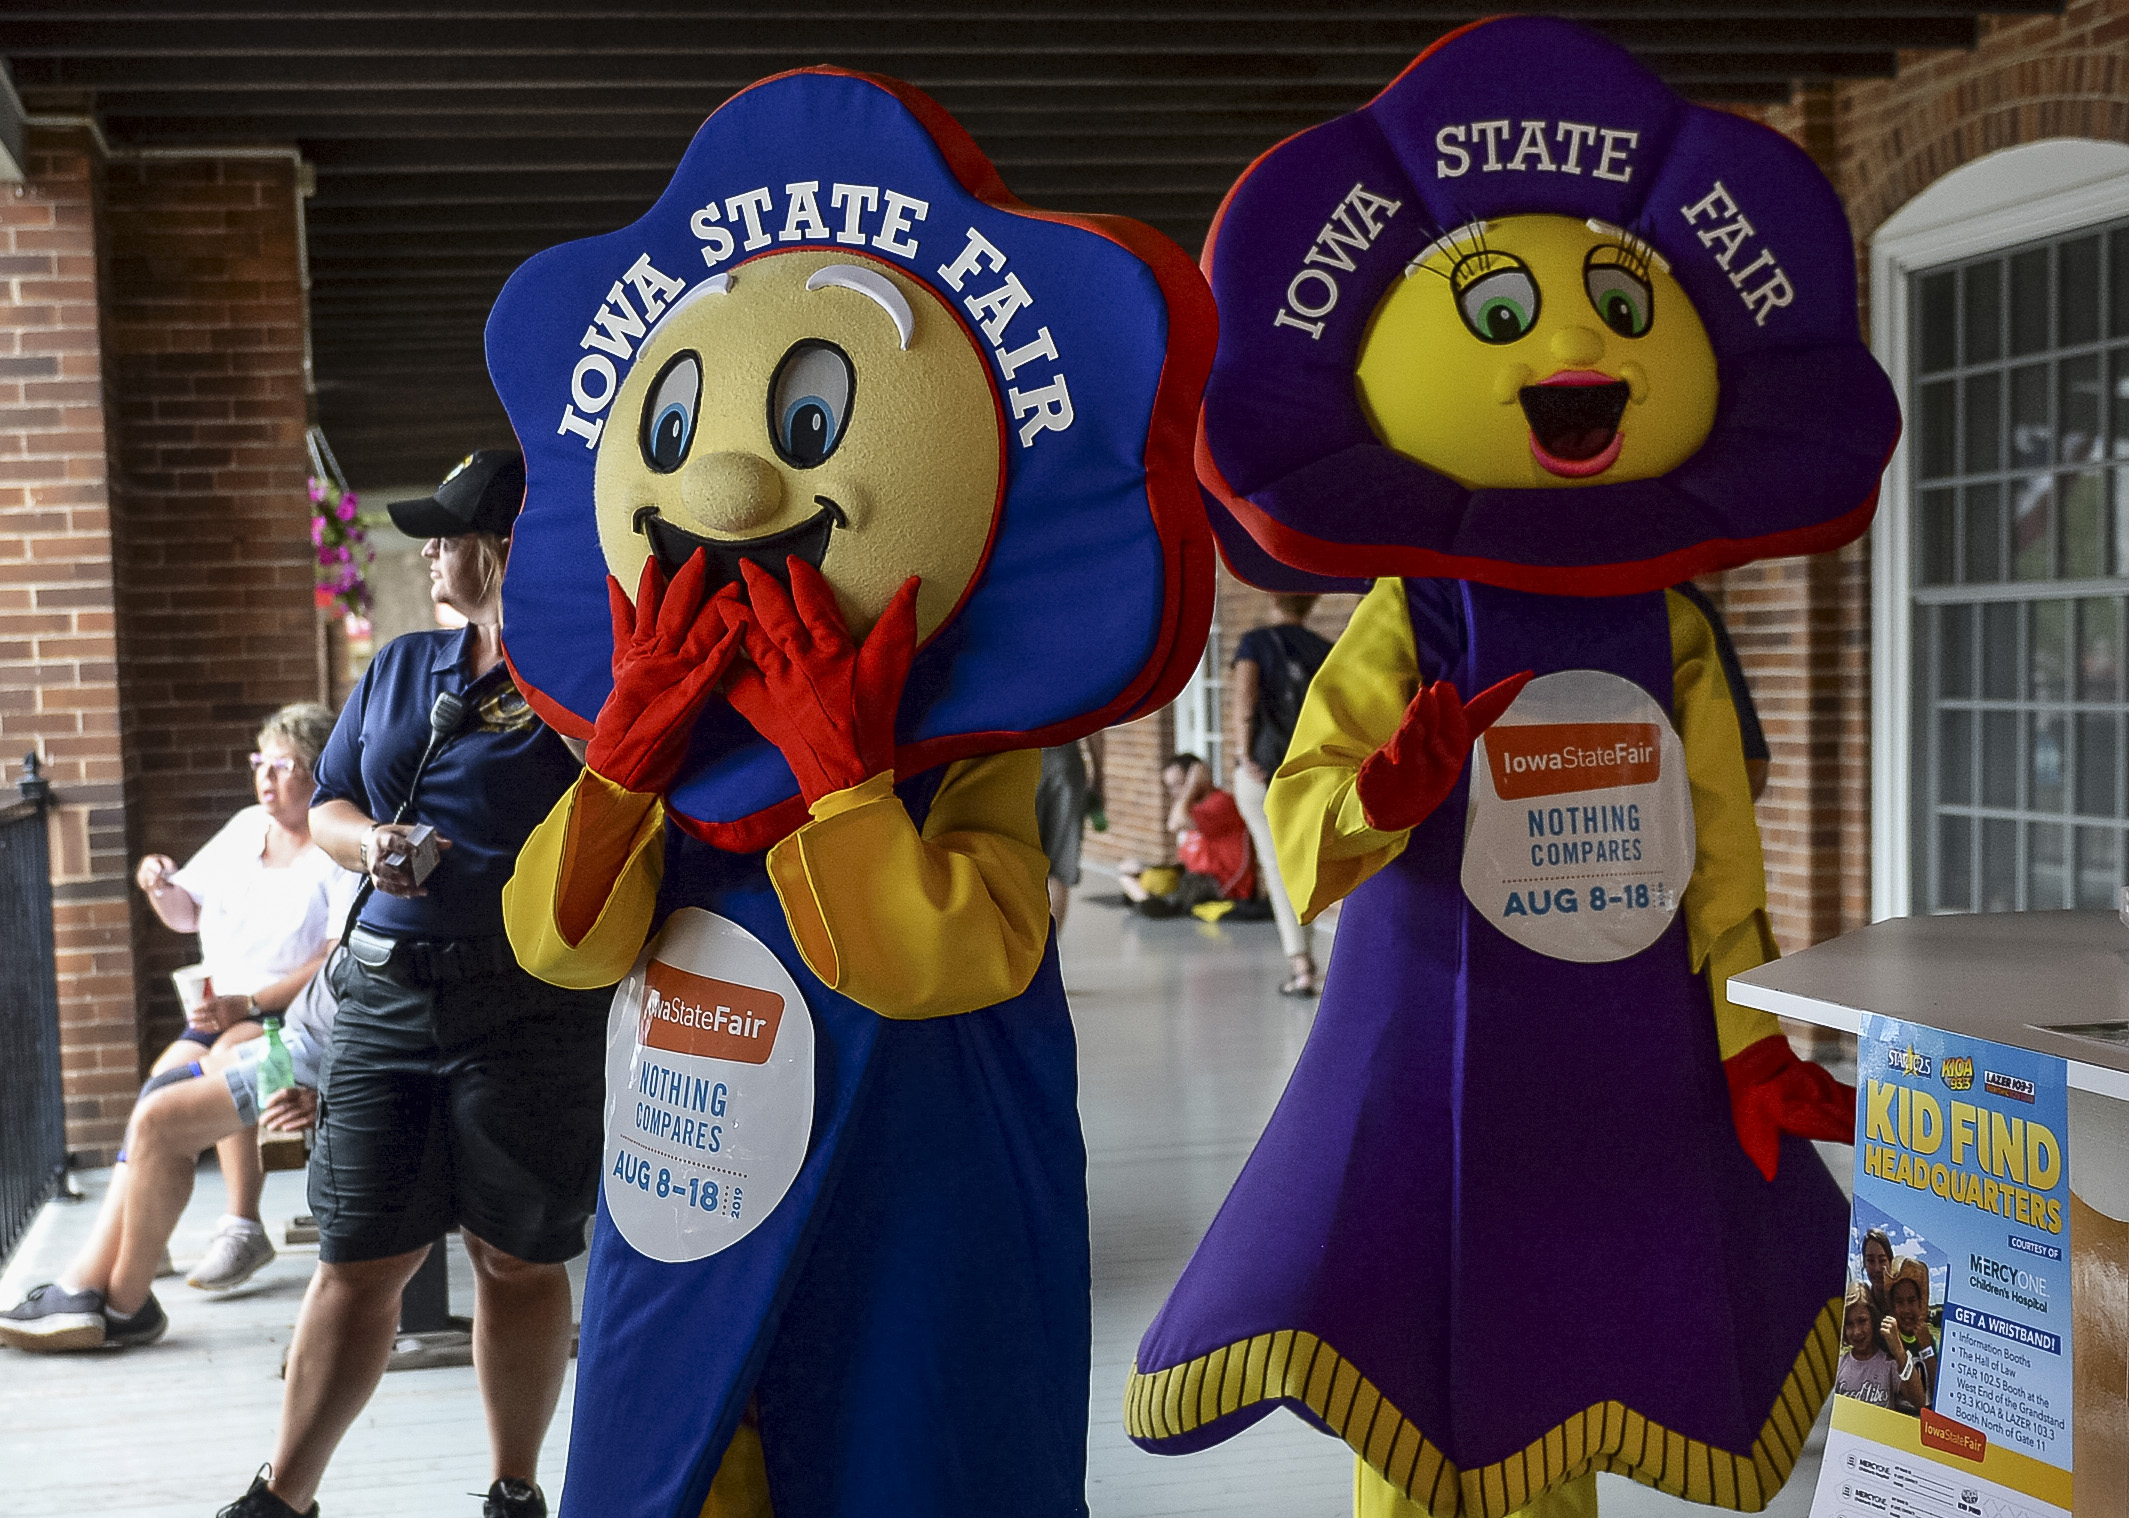 UNITED STATES - AUGUST 12: Iowa State Fair mascots walk by the Administration Building at the Iowa State Fair on Monday August 12, 2019. (Photo by Caroline Brehman/CQ Roll Call)